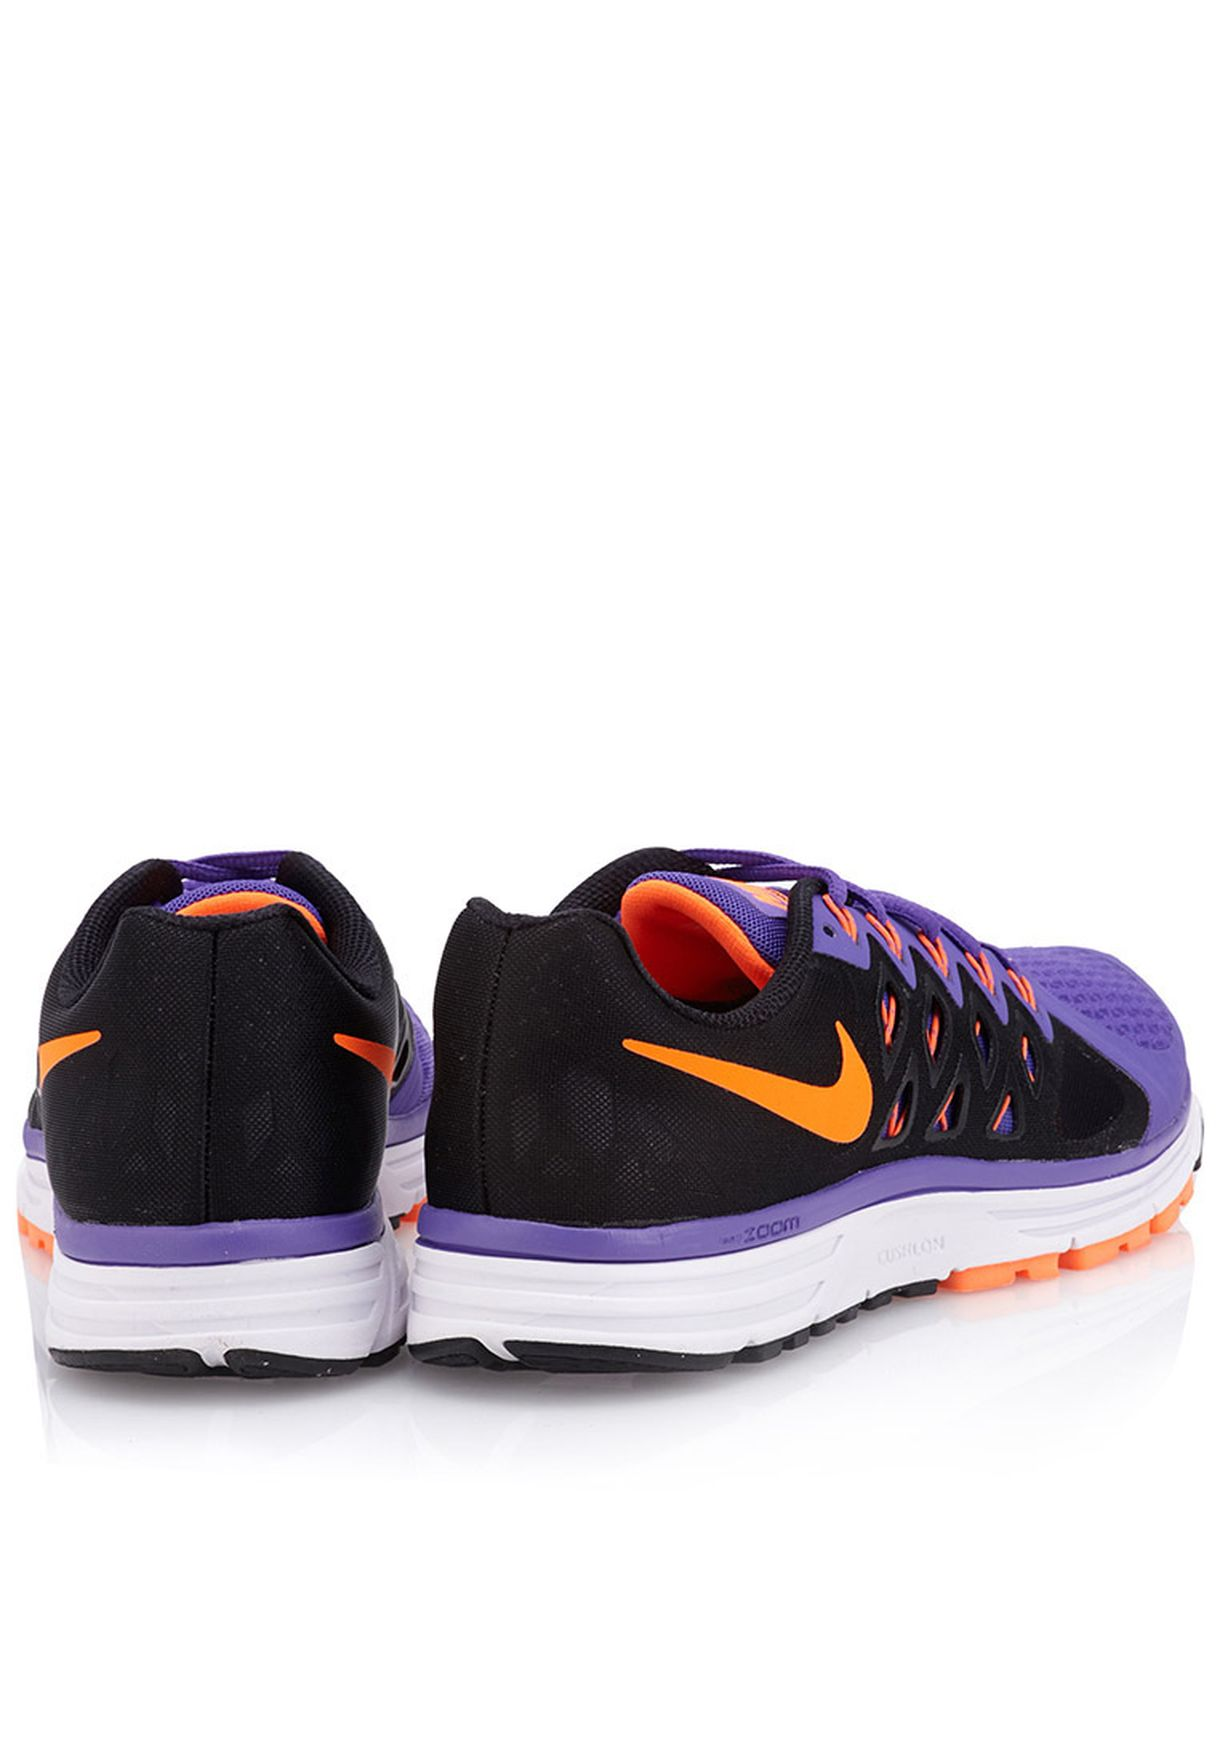 aa5e7d284d0562 Shop Nike multicolor Zoom Vomero 9 642196-501 for Women in ...